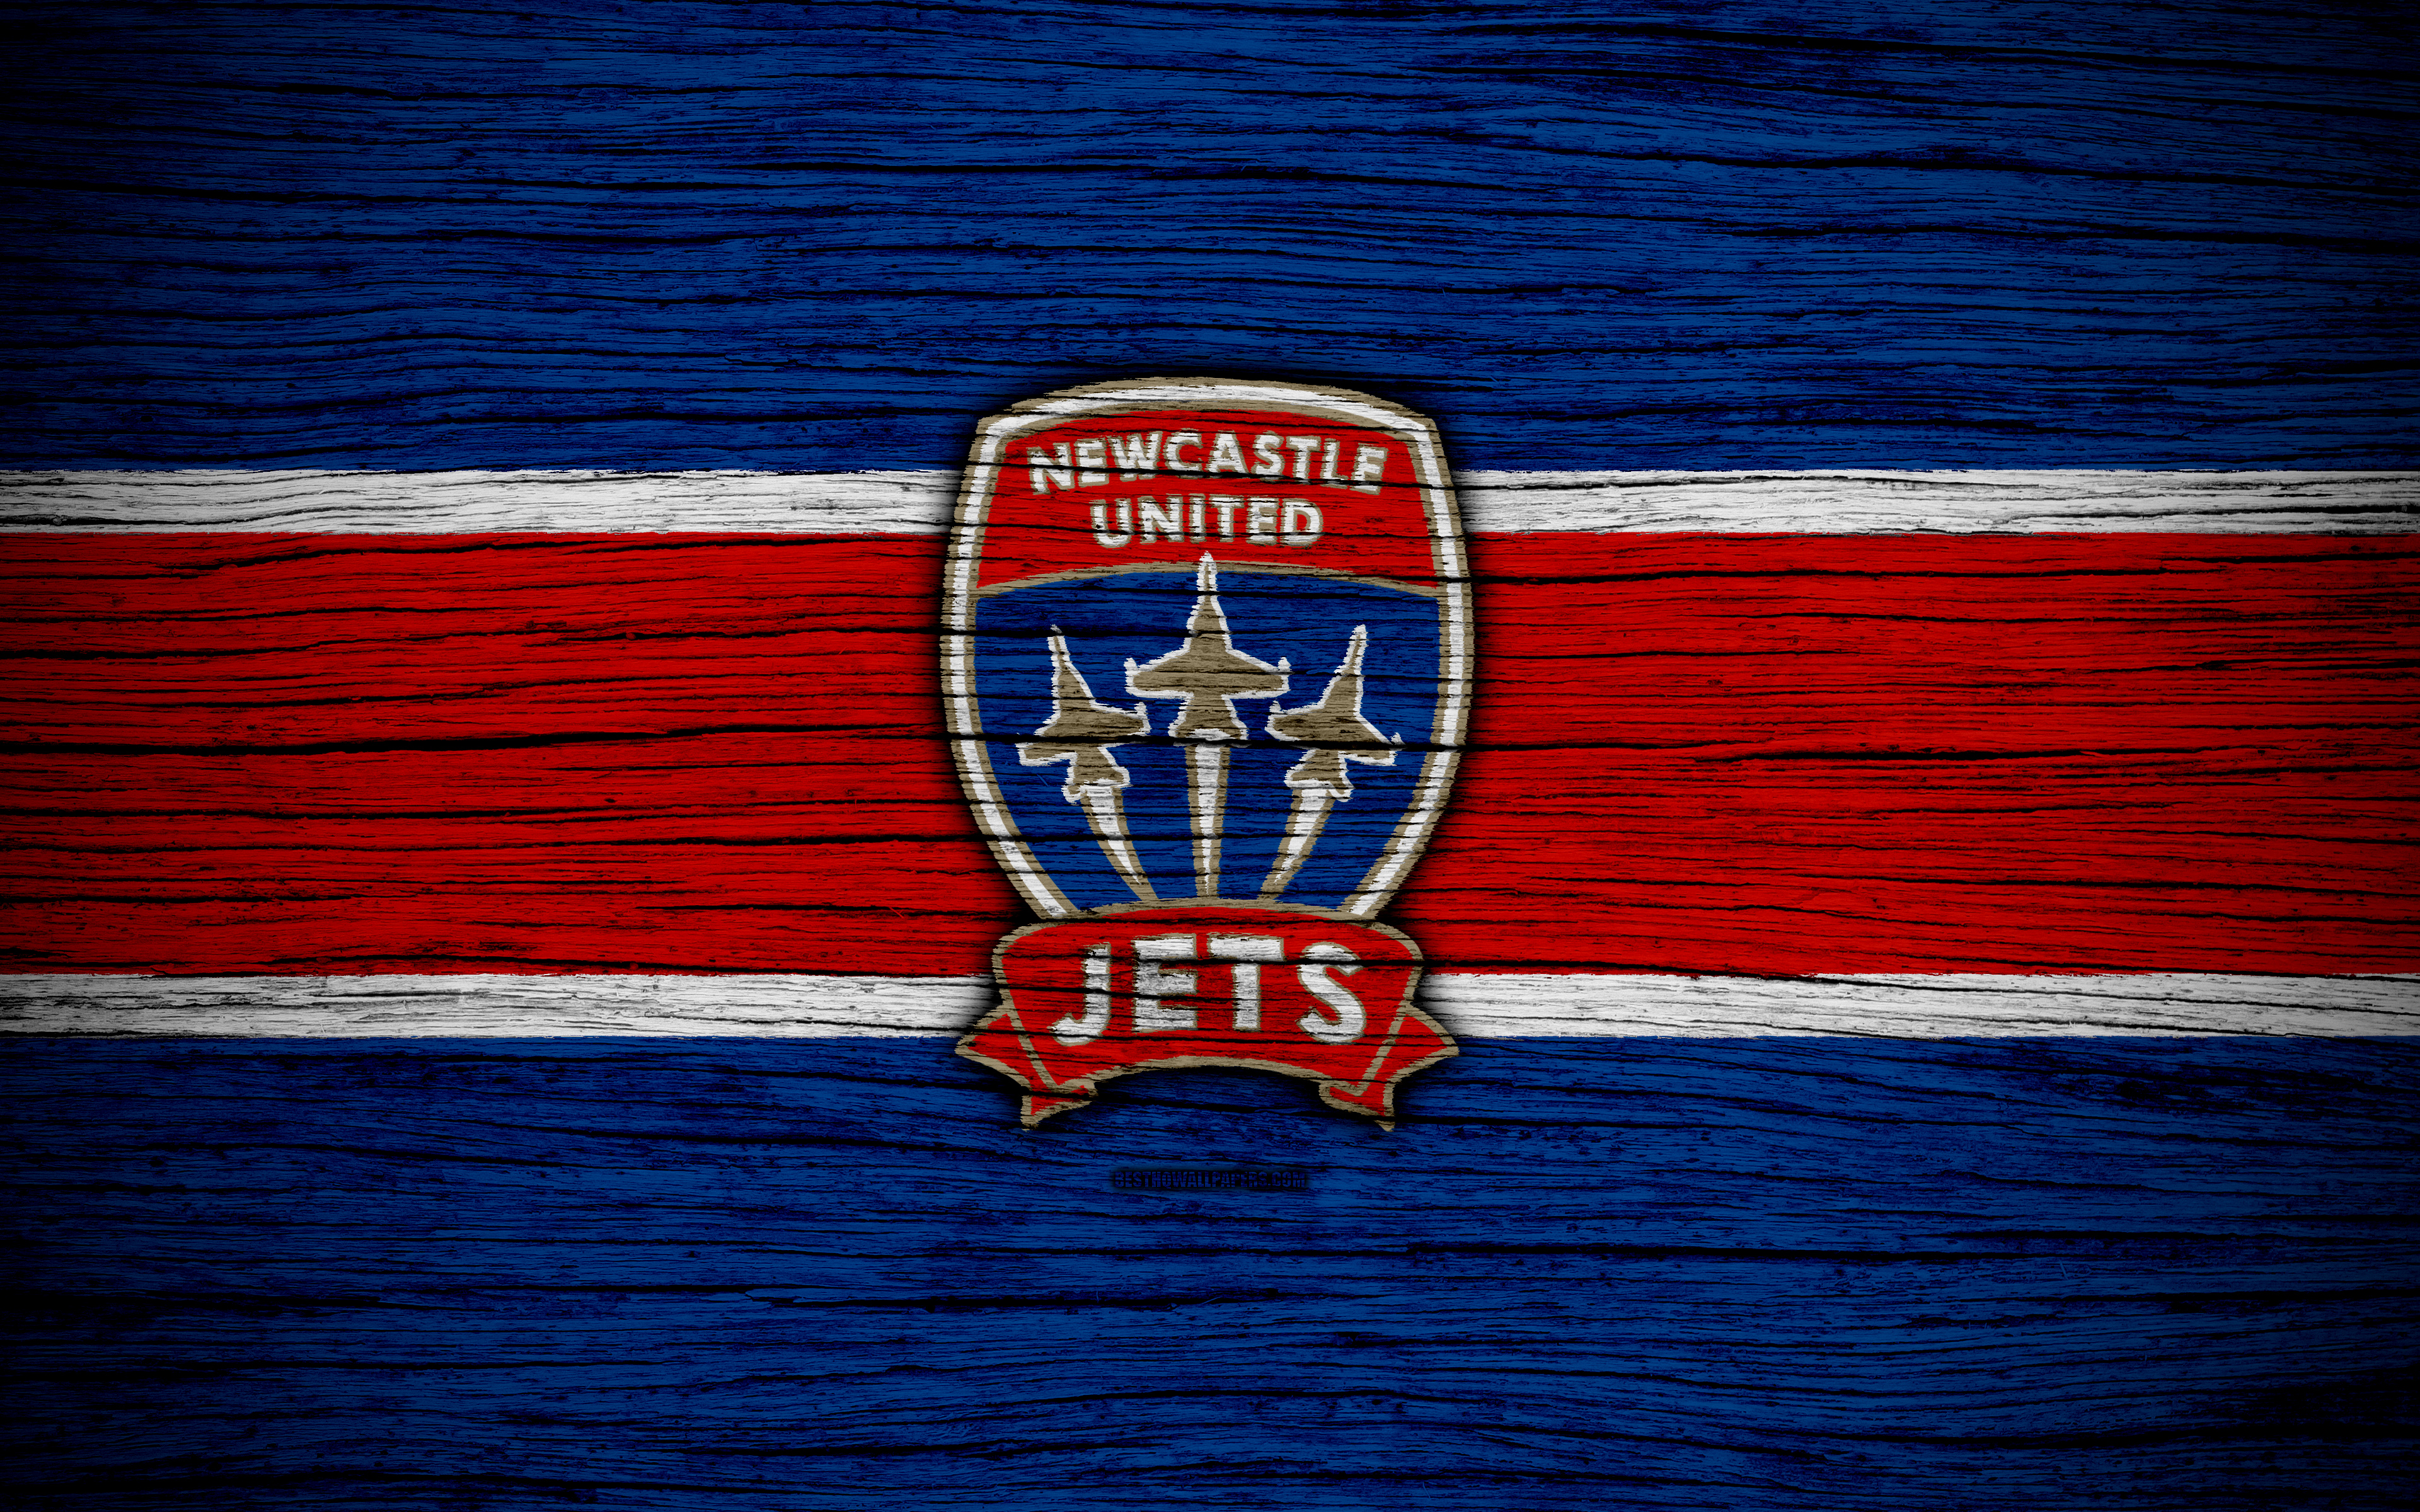 Newcastle Jets Fc 4k Ultra Hd Wallpaper Background Image 3840x2400 Id 990674 Wallpaper Abyss